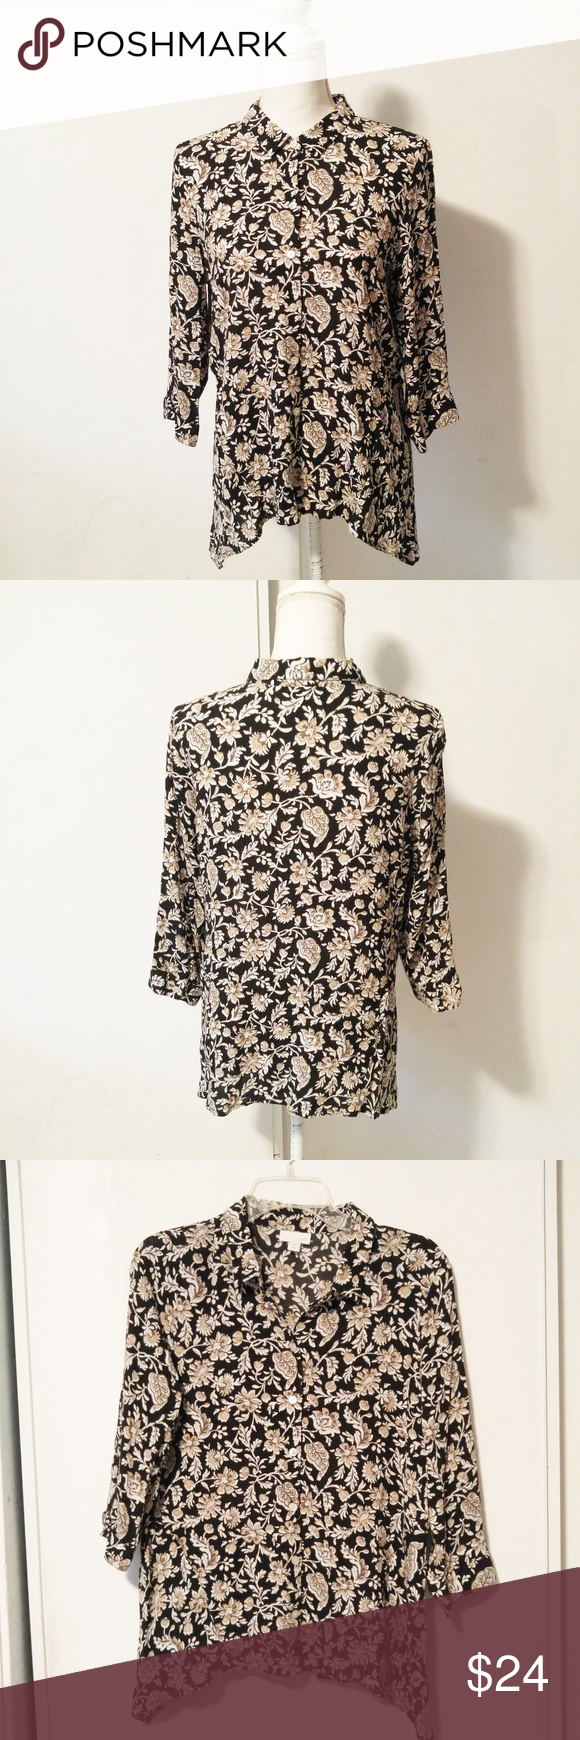 J. Jill black and tan floral button down blouse BRAND: J Jill  SIZE: petite M  FLAW: none  COLOR: black, tan  DESCRIPTION: J jill petite black button down blouse with tan floral print.   Approximate measurements: Bust 19 Waist 18 Sleeve 15 Length 25.5  Use #bishoujo to sort for your size. Please note I do have several pets, but most items will be washed before shipping  #jjill #petite #floral #buttondown J. Jill Tops Button Down Shirts